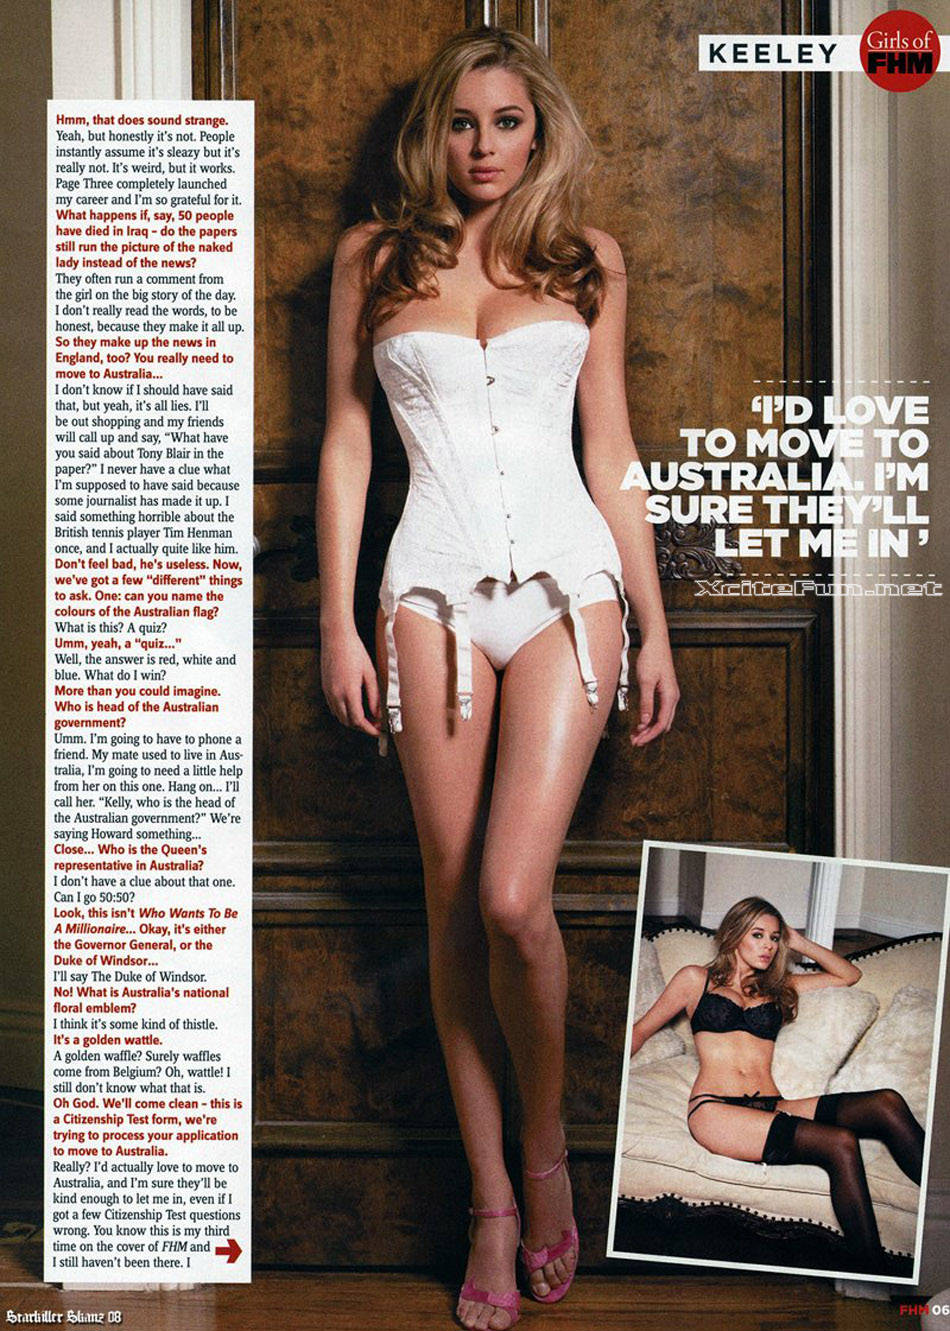 London Sun Page 3 Girls http://forum.xcitefun.net/keeley-hazell-page-3-girl-photo-shoot-for-fhm-australia-t10236.html